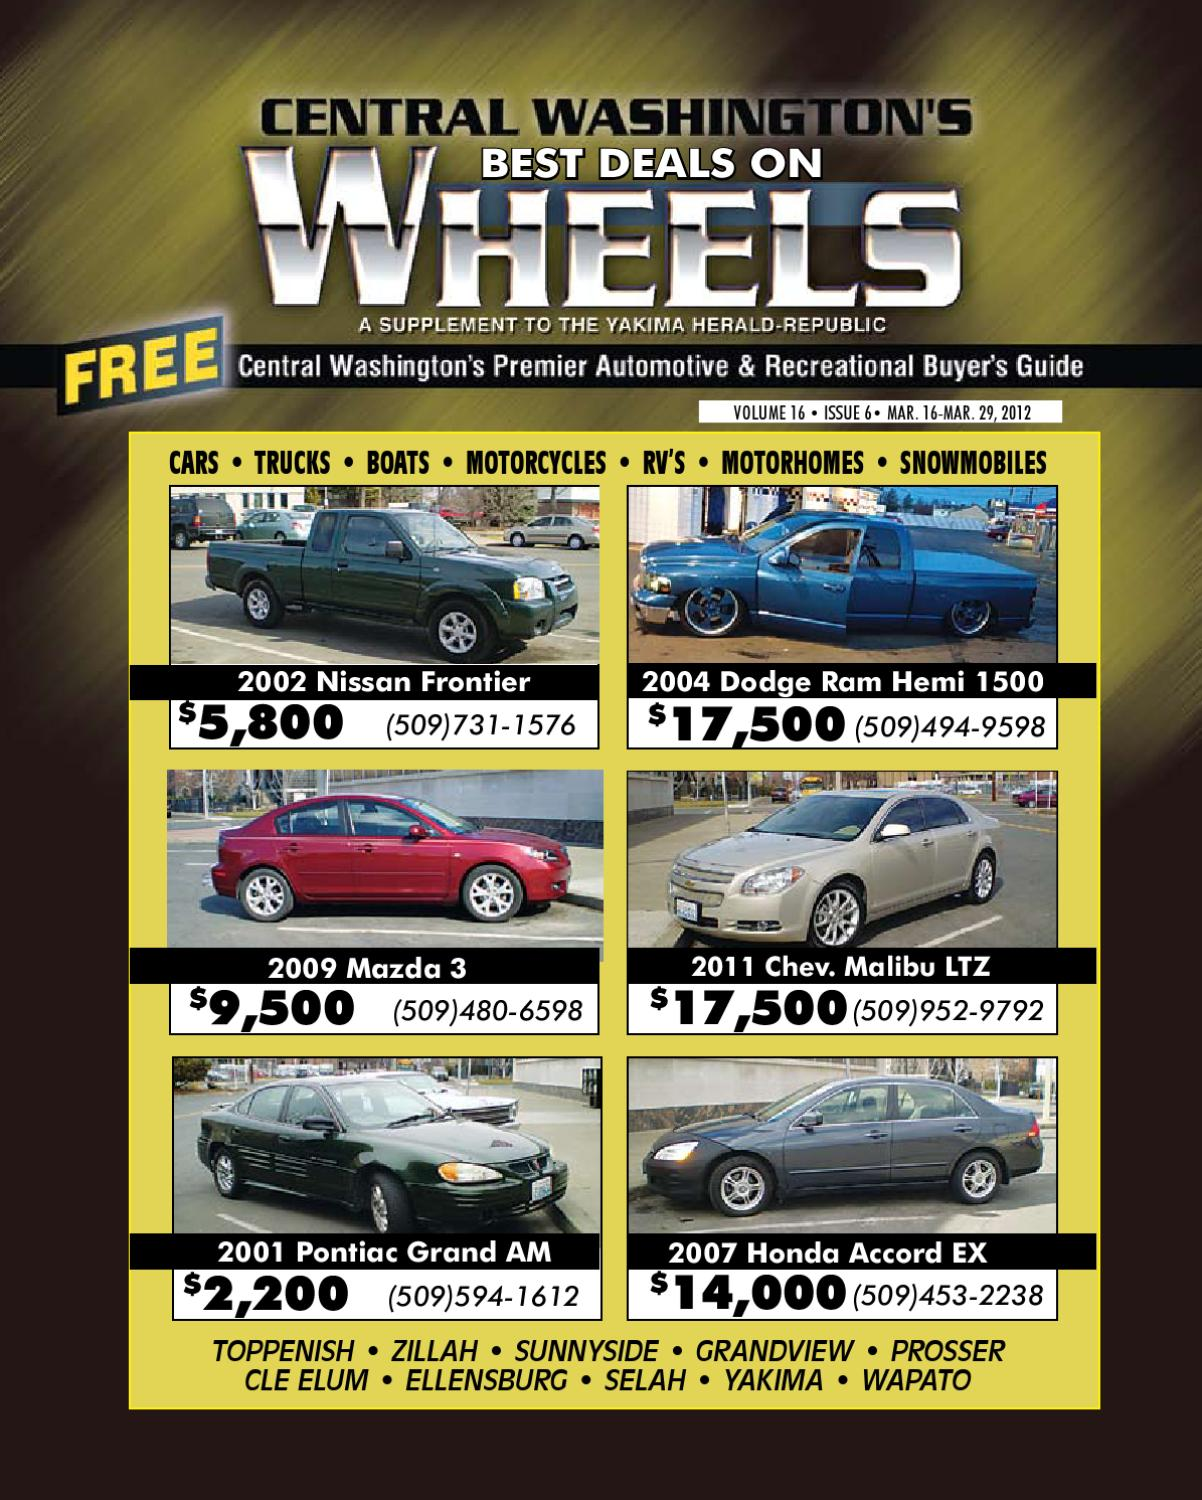 Wheels 03 16 2012 By Yakima Herald Republic Issuu